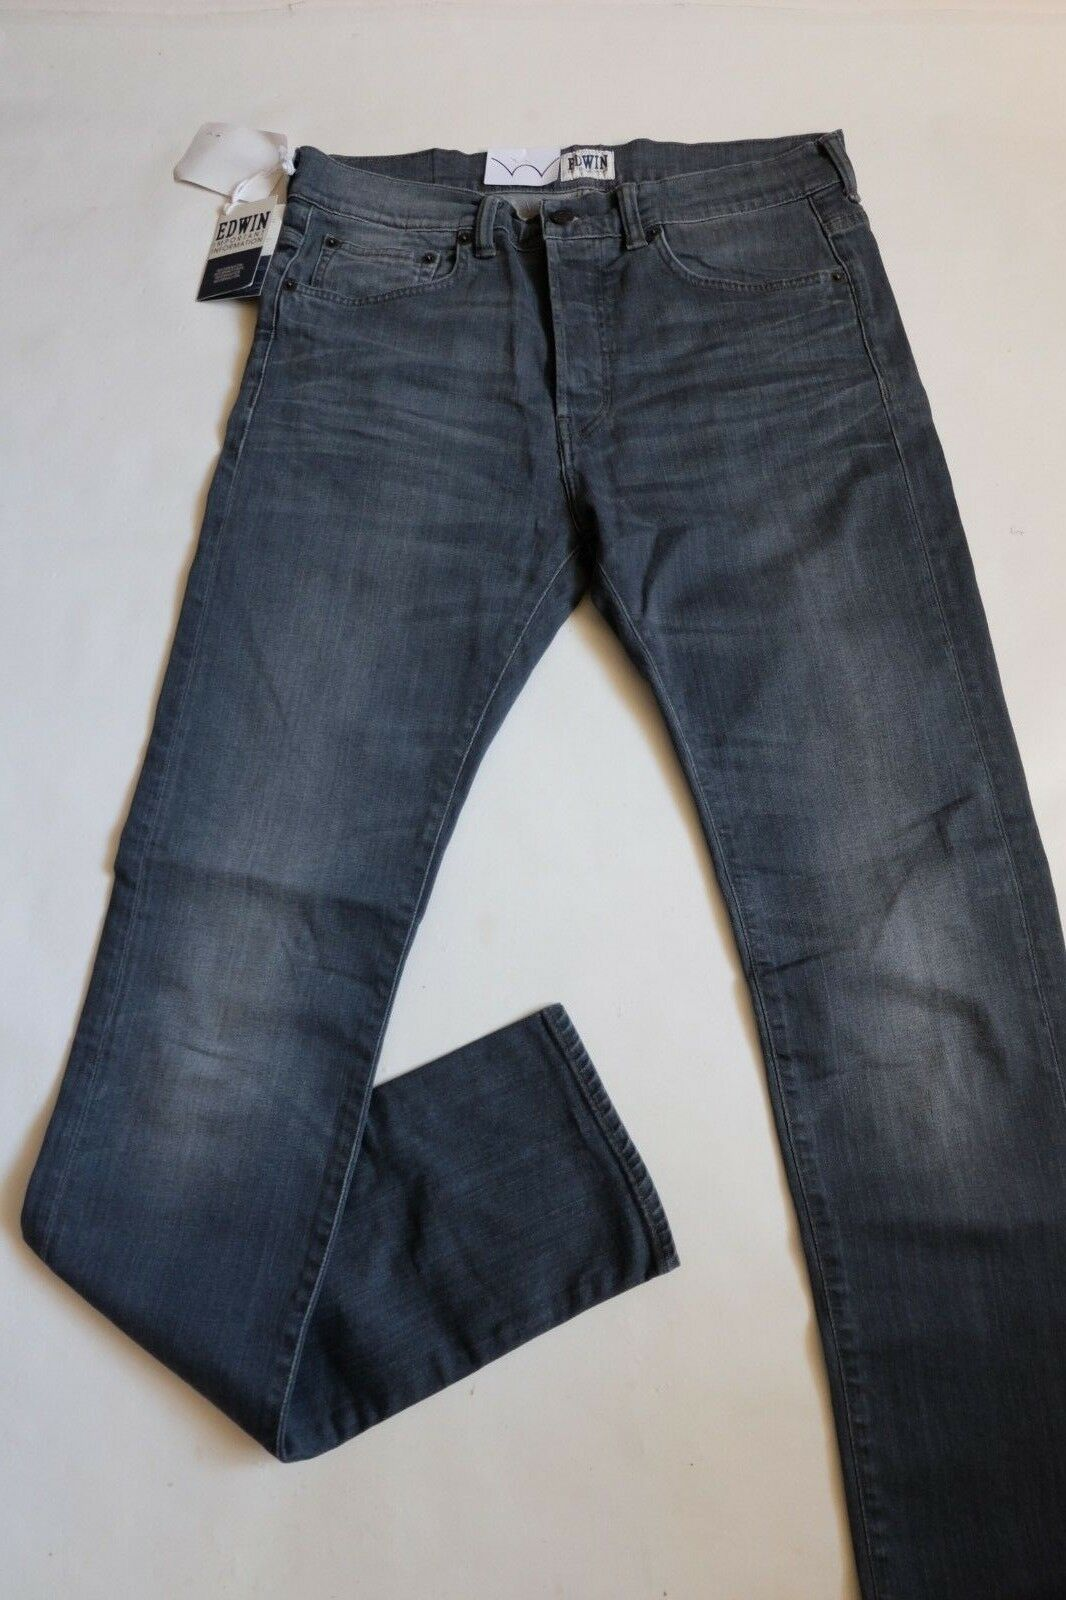 940fc5e6f JEANS EDWIN MAN ED 80 SLIM TAPERED (cs grey- dark trip) W31 L34 VAL ...